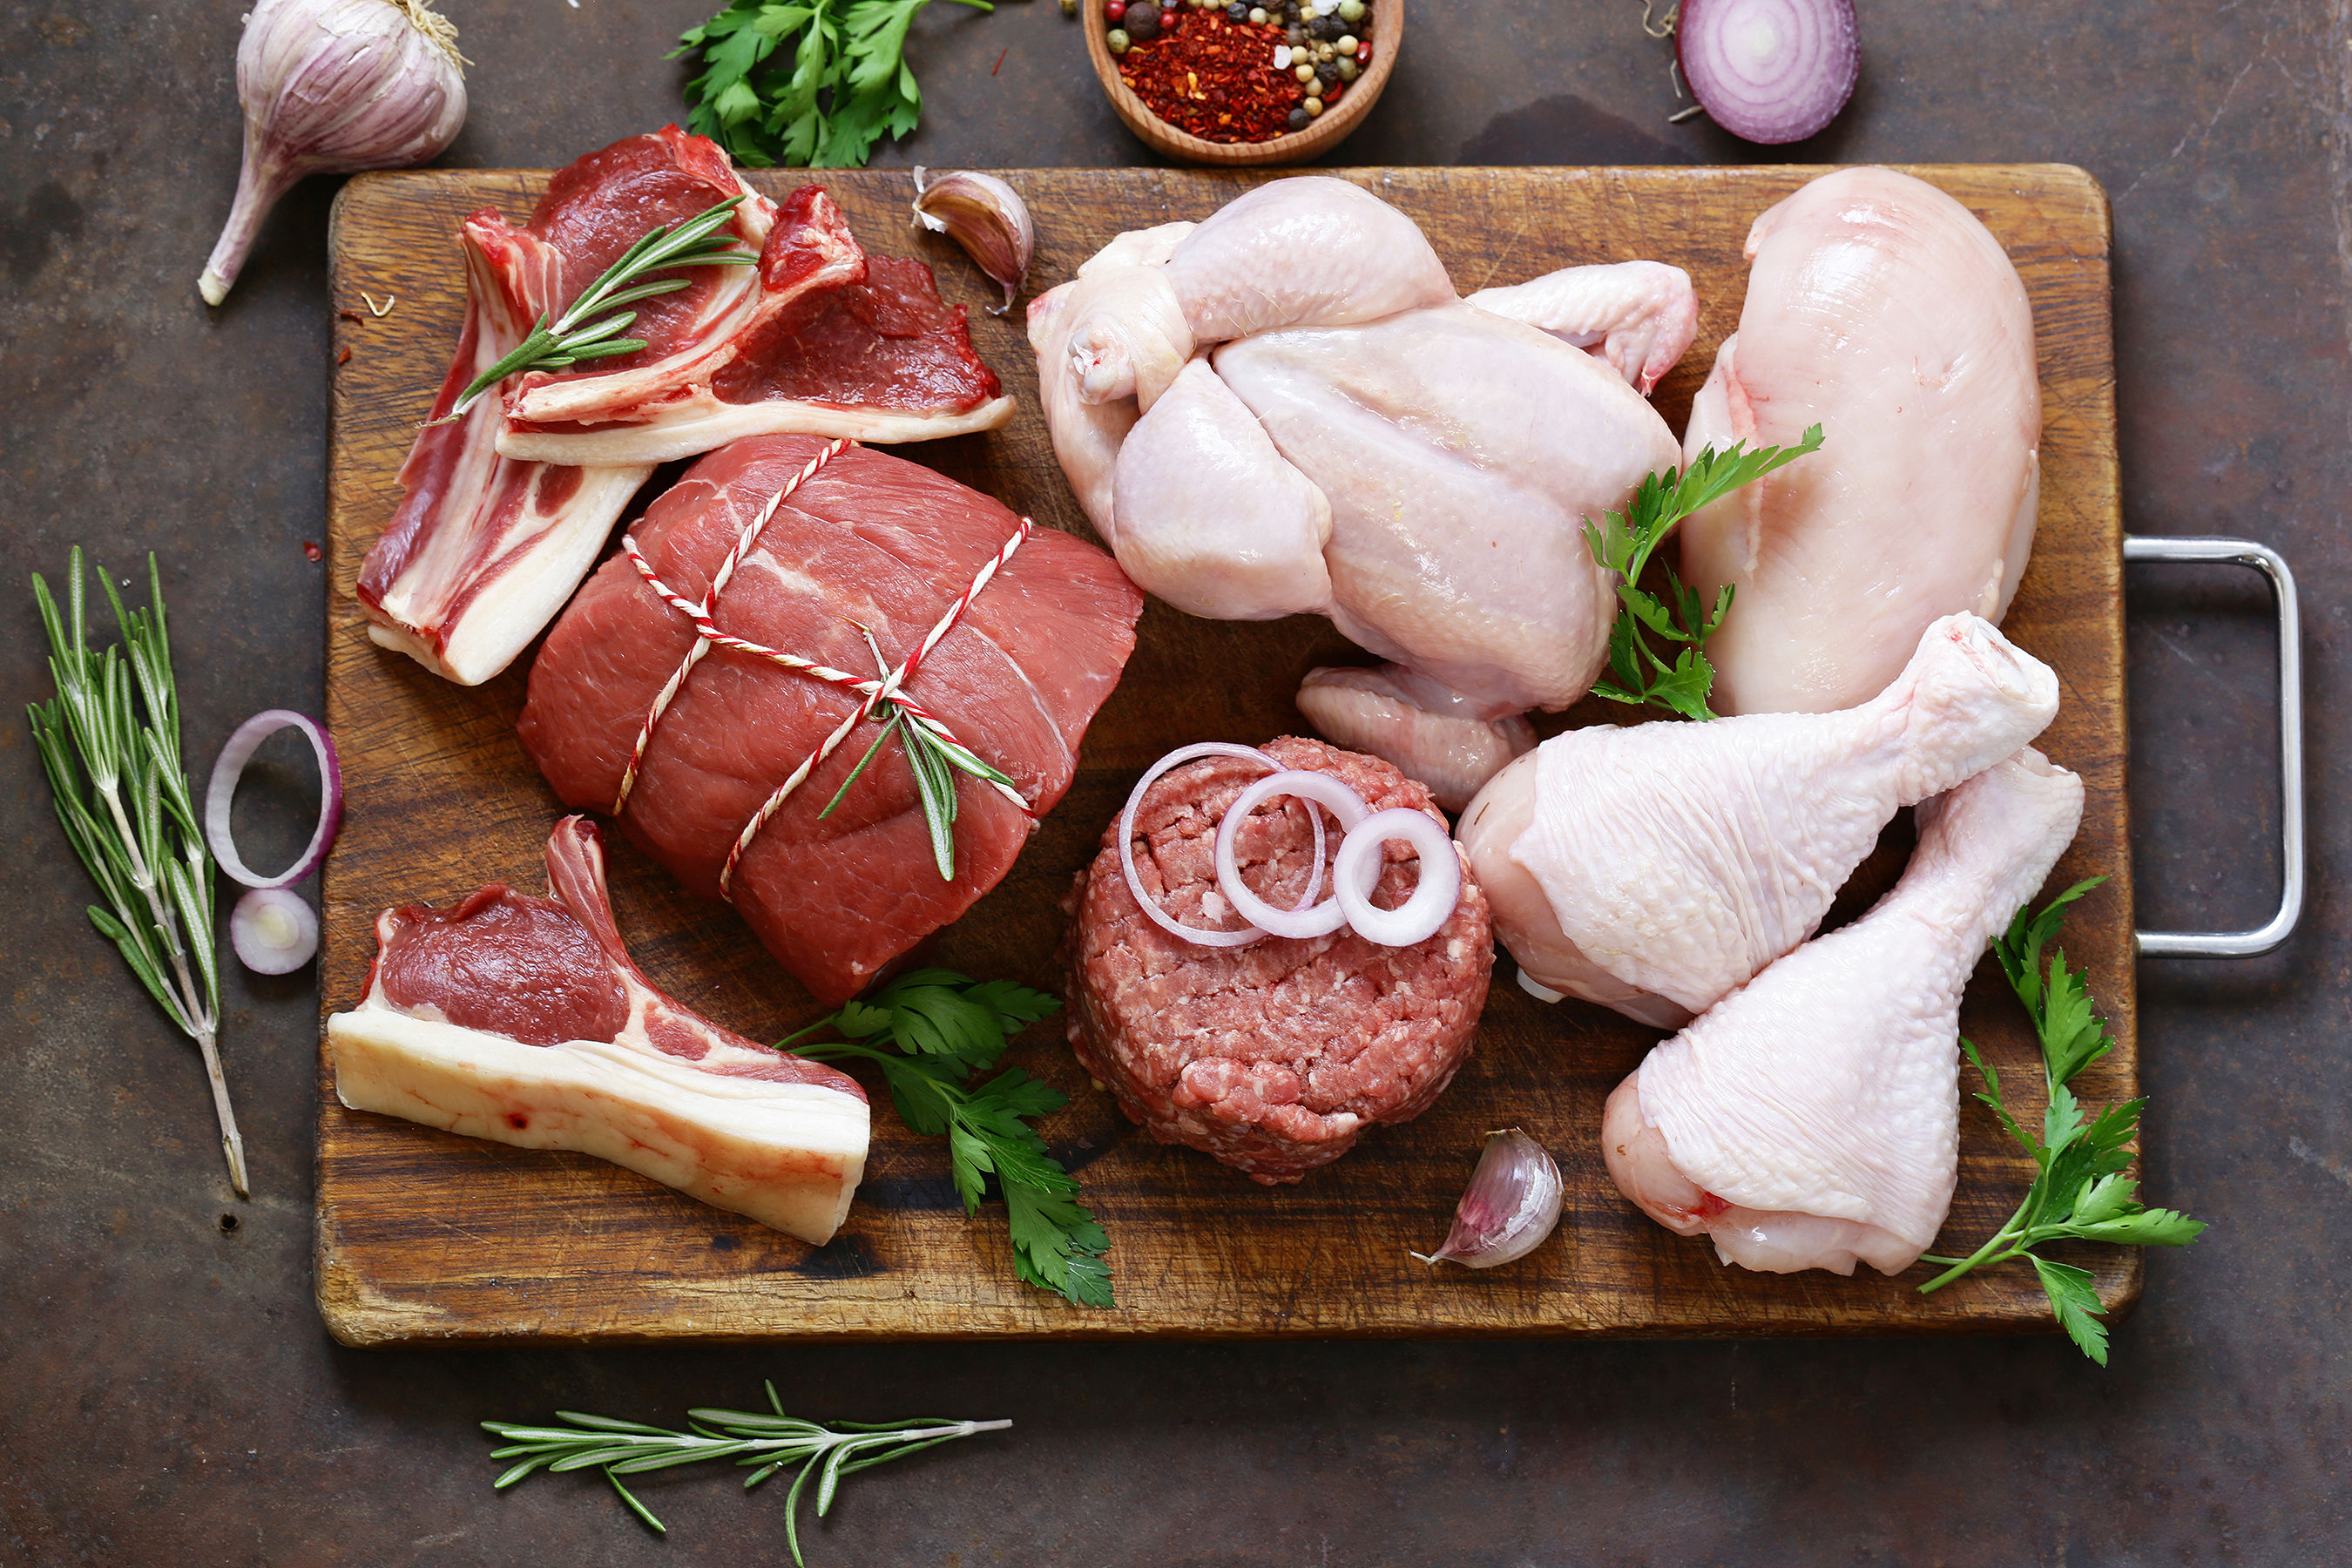 Eating White Meat Is Just as Bad for Your Cholesterol as Eating Red Meat, Study Suggests